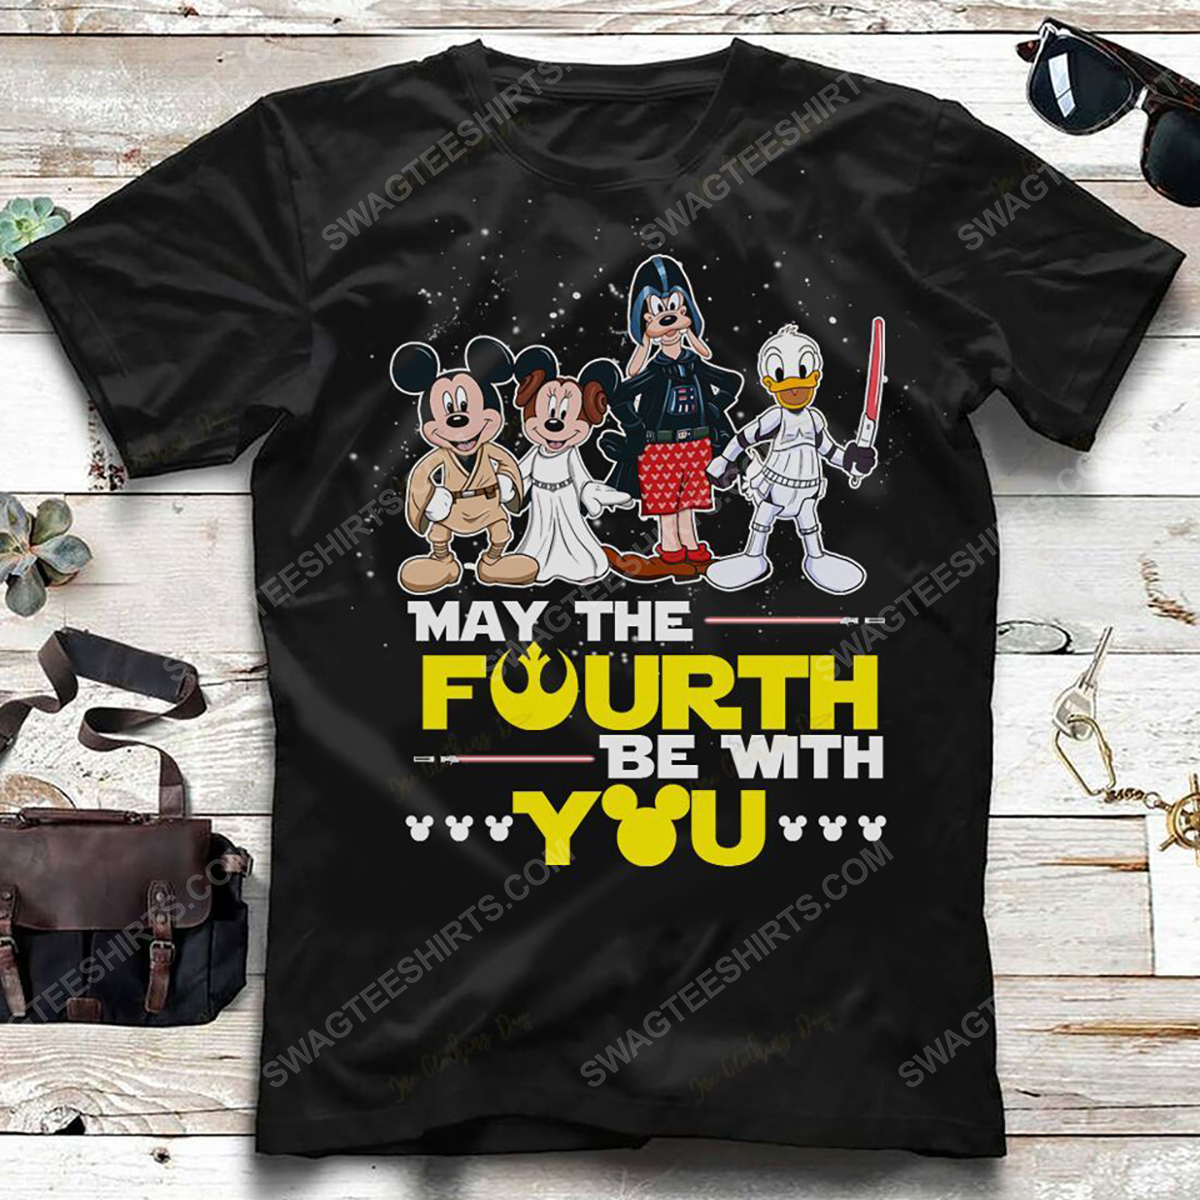 Star wars may the force be with you and mickey mouse shirt 3(1)